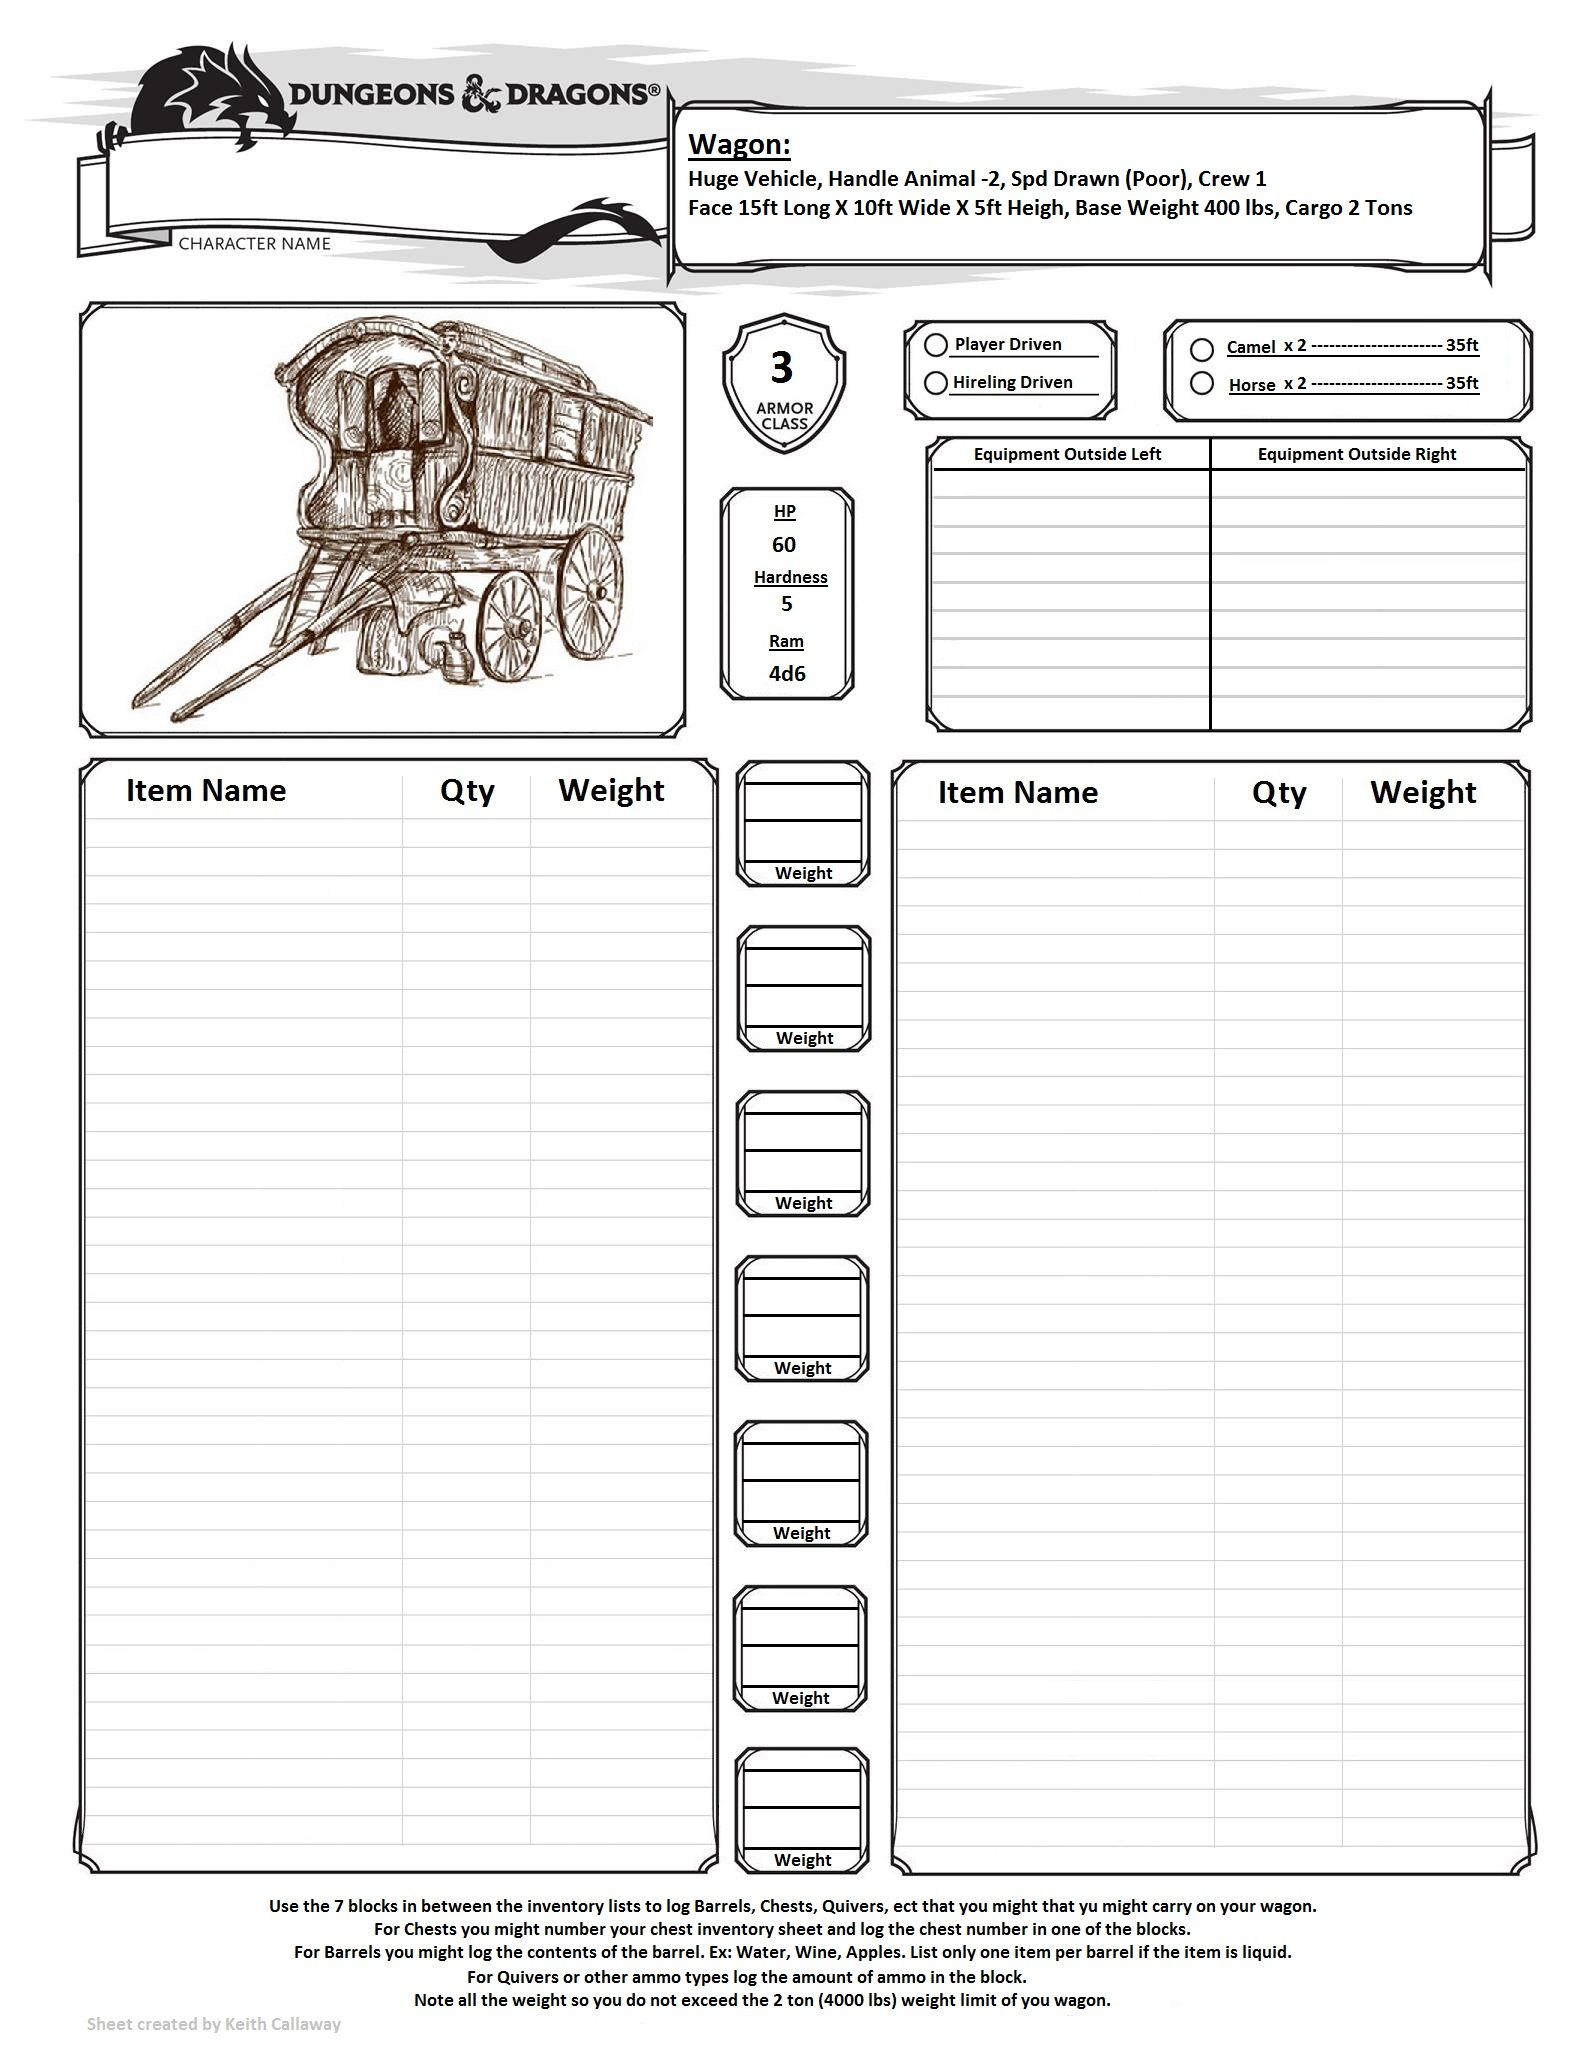 Wagon Inventory Sheet For Dungeons Amp Dragons